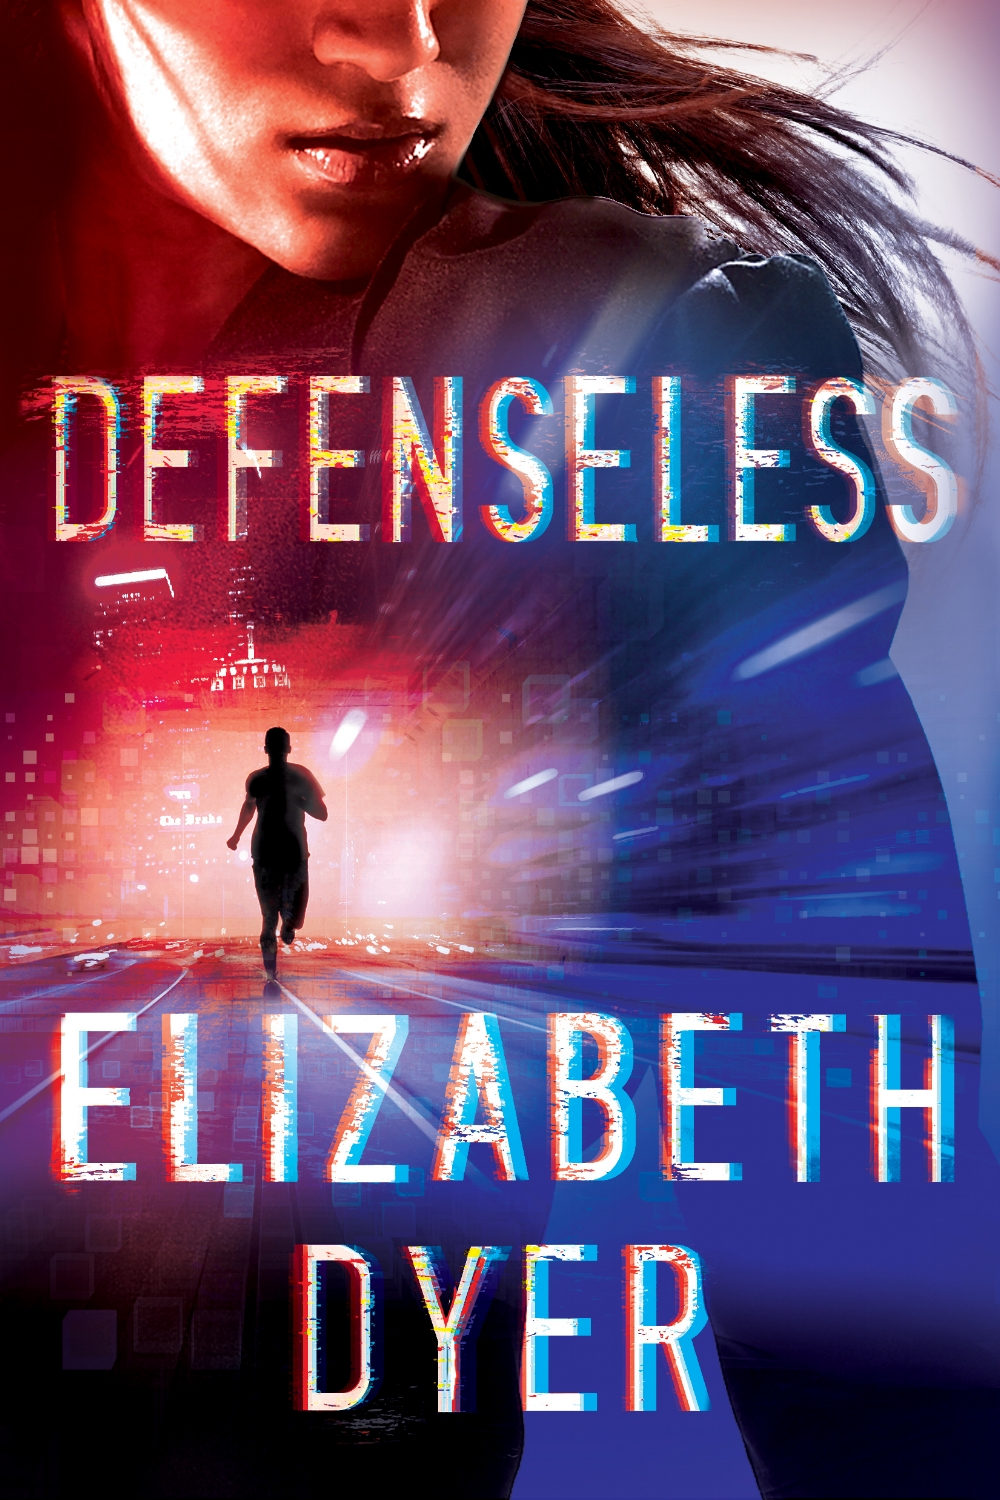 Defenseless (Somerton Security, Book 1) - How far will she go to protect the sexiest guy in tech . . .When ex-marine Georgia Bennett left the military for high-end private security, it was supposed to soften her snarky attitude. Instead, her short fuse just earned her a punishment of an assignment: protect smart-ass tech genius and Department of Defense contractor Parker Livingston. It should have been easy—only no one warned Georgia that Parker was one seriously drop-dead-gorgeous geek.The last thing Parker needs is a bodyguard, especially not one with killer curves and a sassy mouth who tempts him to do something incredibly stupid. He's too busy investigating whoever is turning his technology against him and threatening his team of covert operatives. But when an assassin sends Georgia and Parker running for their lives, it might just be the explosive sexual chemistry and the trust that's building between them that saves their necks. Because the only thing more dangerous than the combination of Parker's intellect and Georgia's aim is their steadfast desire to protect each other, no matter the cost.